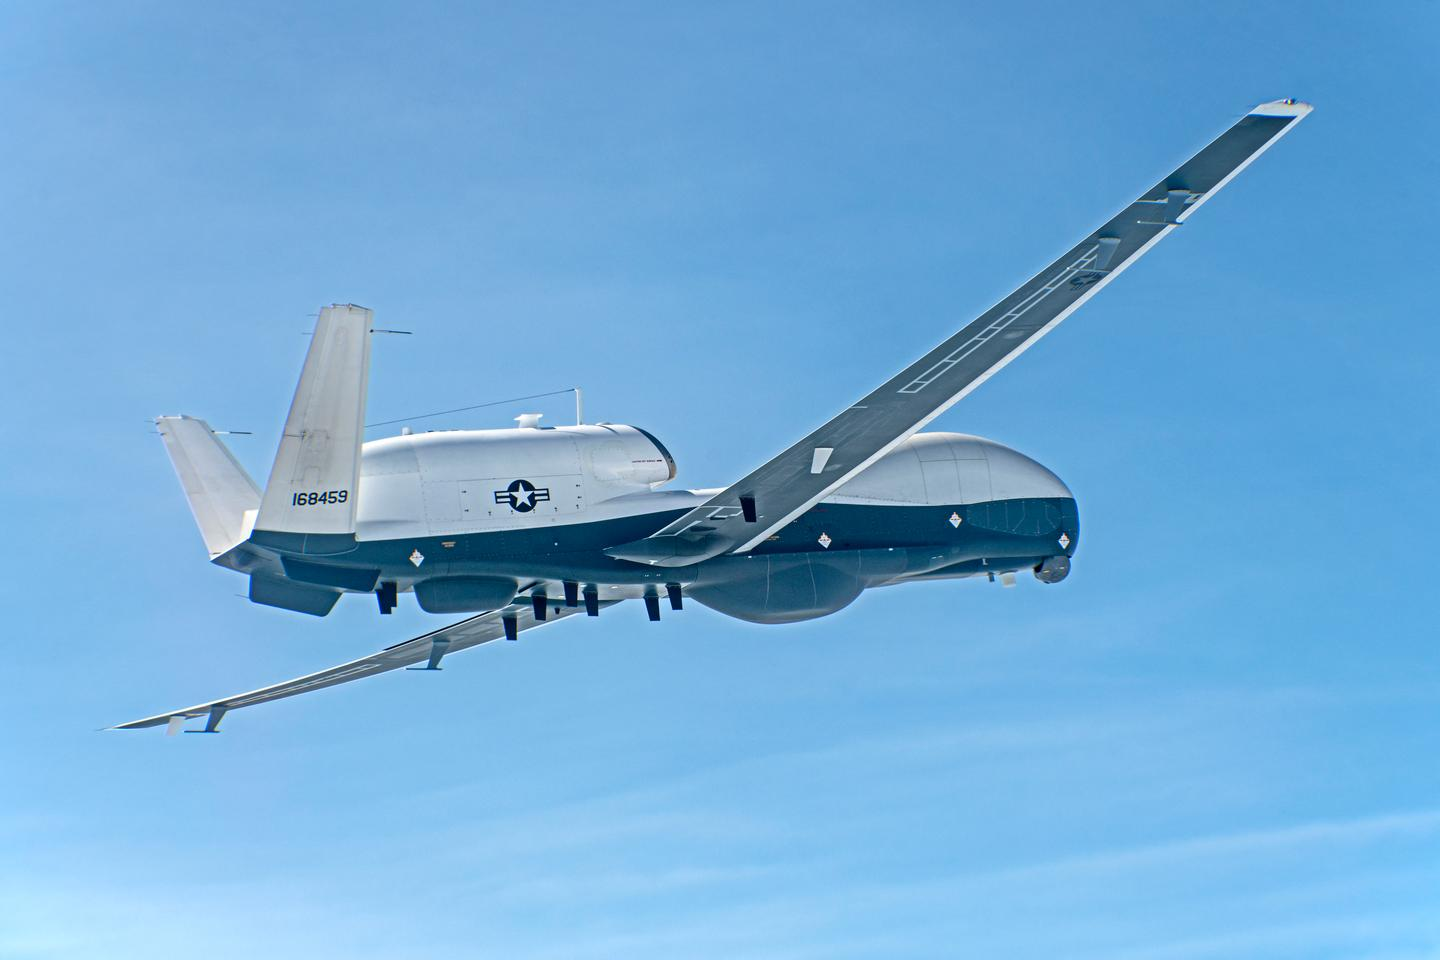 The new configuration will allow the Triton to replace the EP-3E Aries fleet